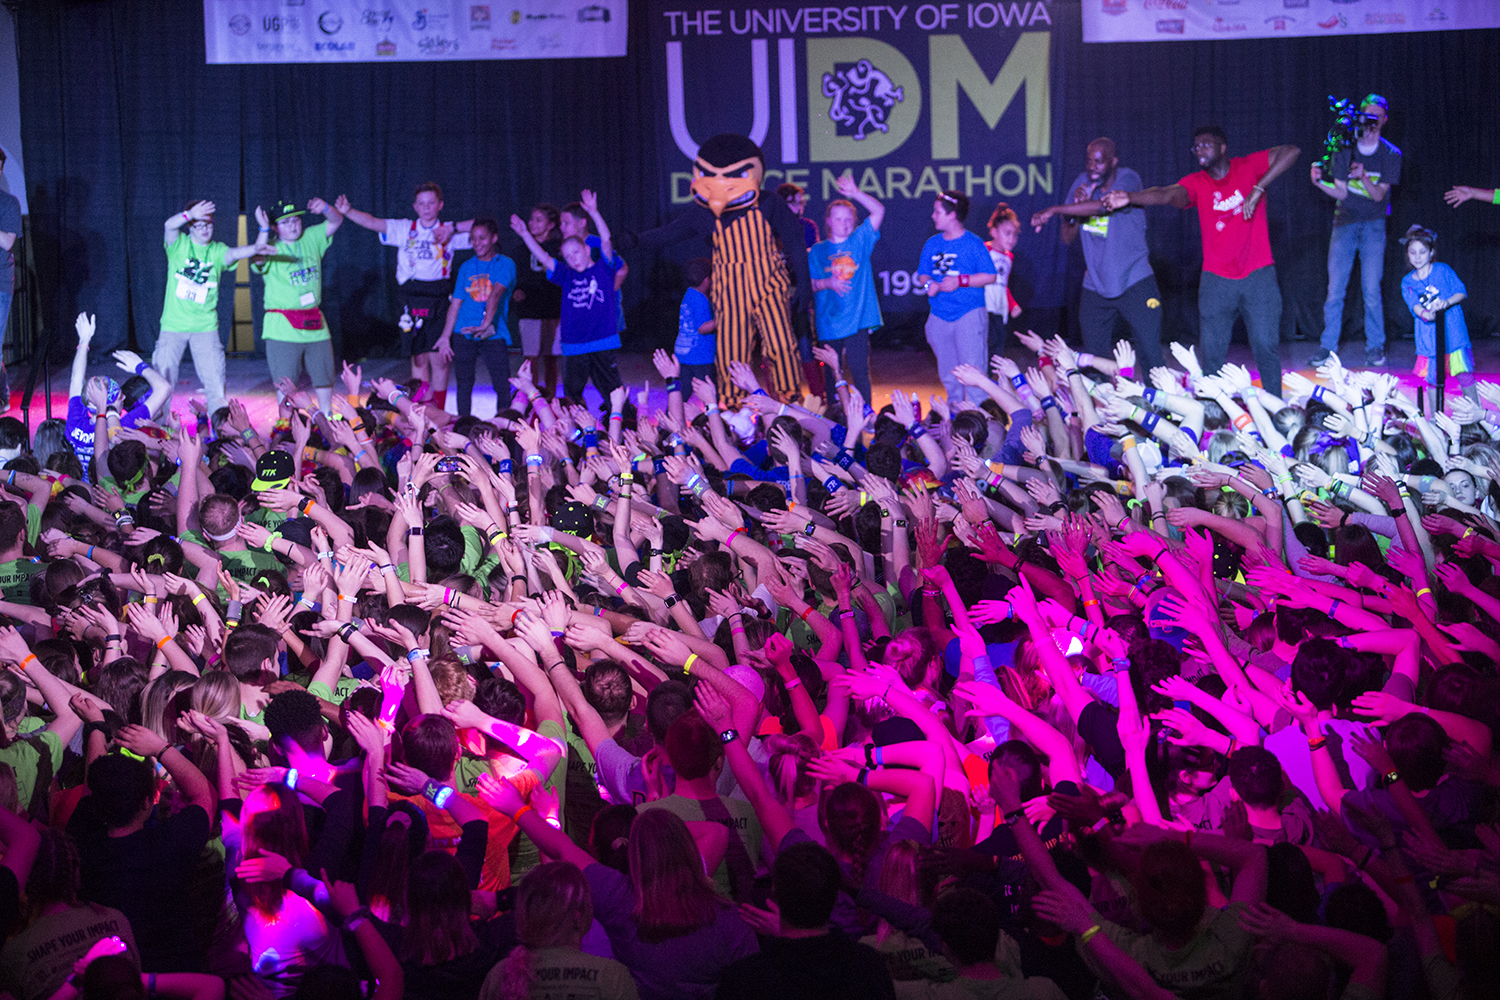 Participants dance during Dance Marathon 25 at the Iowa Memorial Union on Saturday February 2, 2019